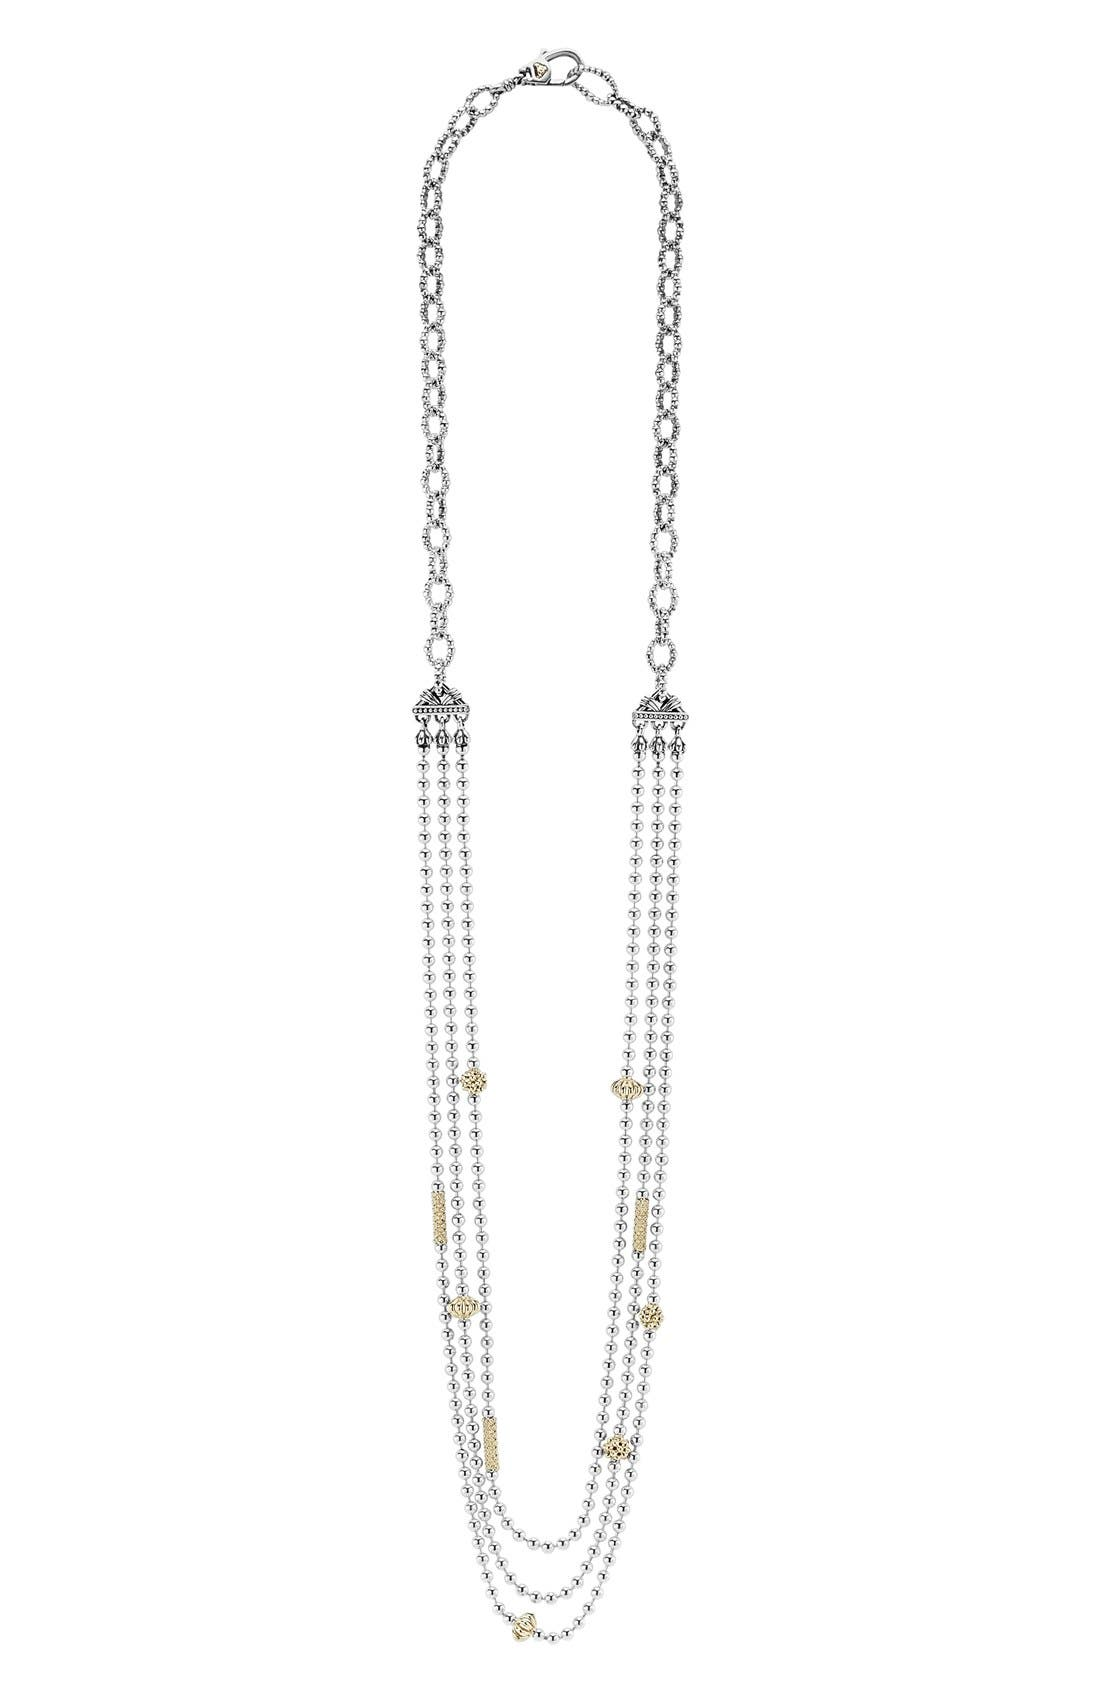 'Caviar Icon' Multistrand Necklace,                             Main thumbnail 1, color,                             SILVER/ GOLD